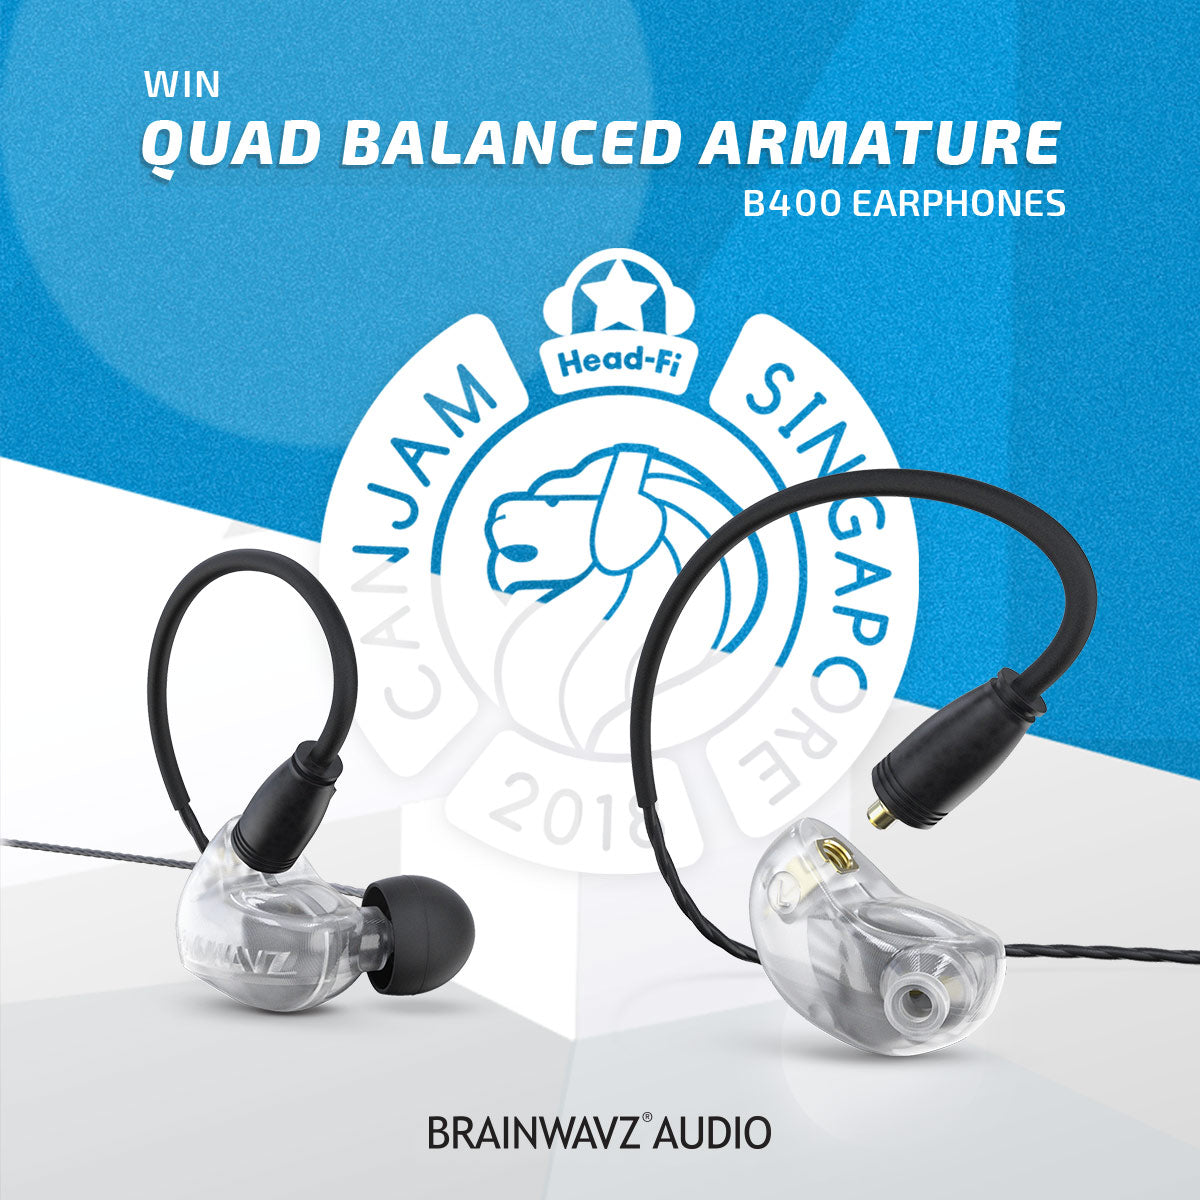 Brainwavz CANJAM Singapore win B400 Balanced Armature